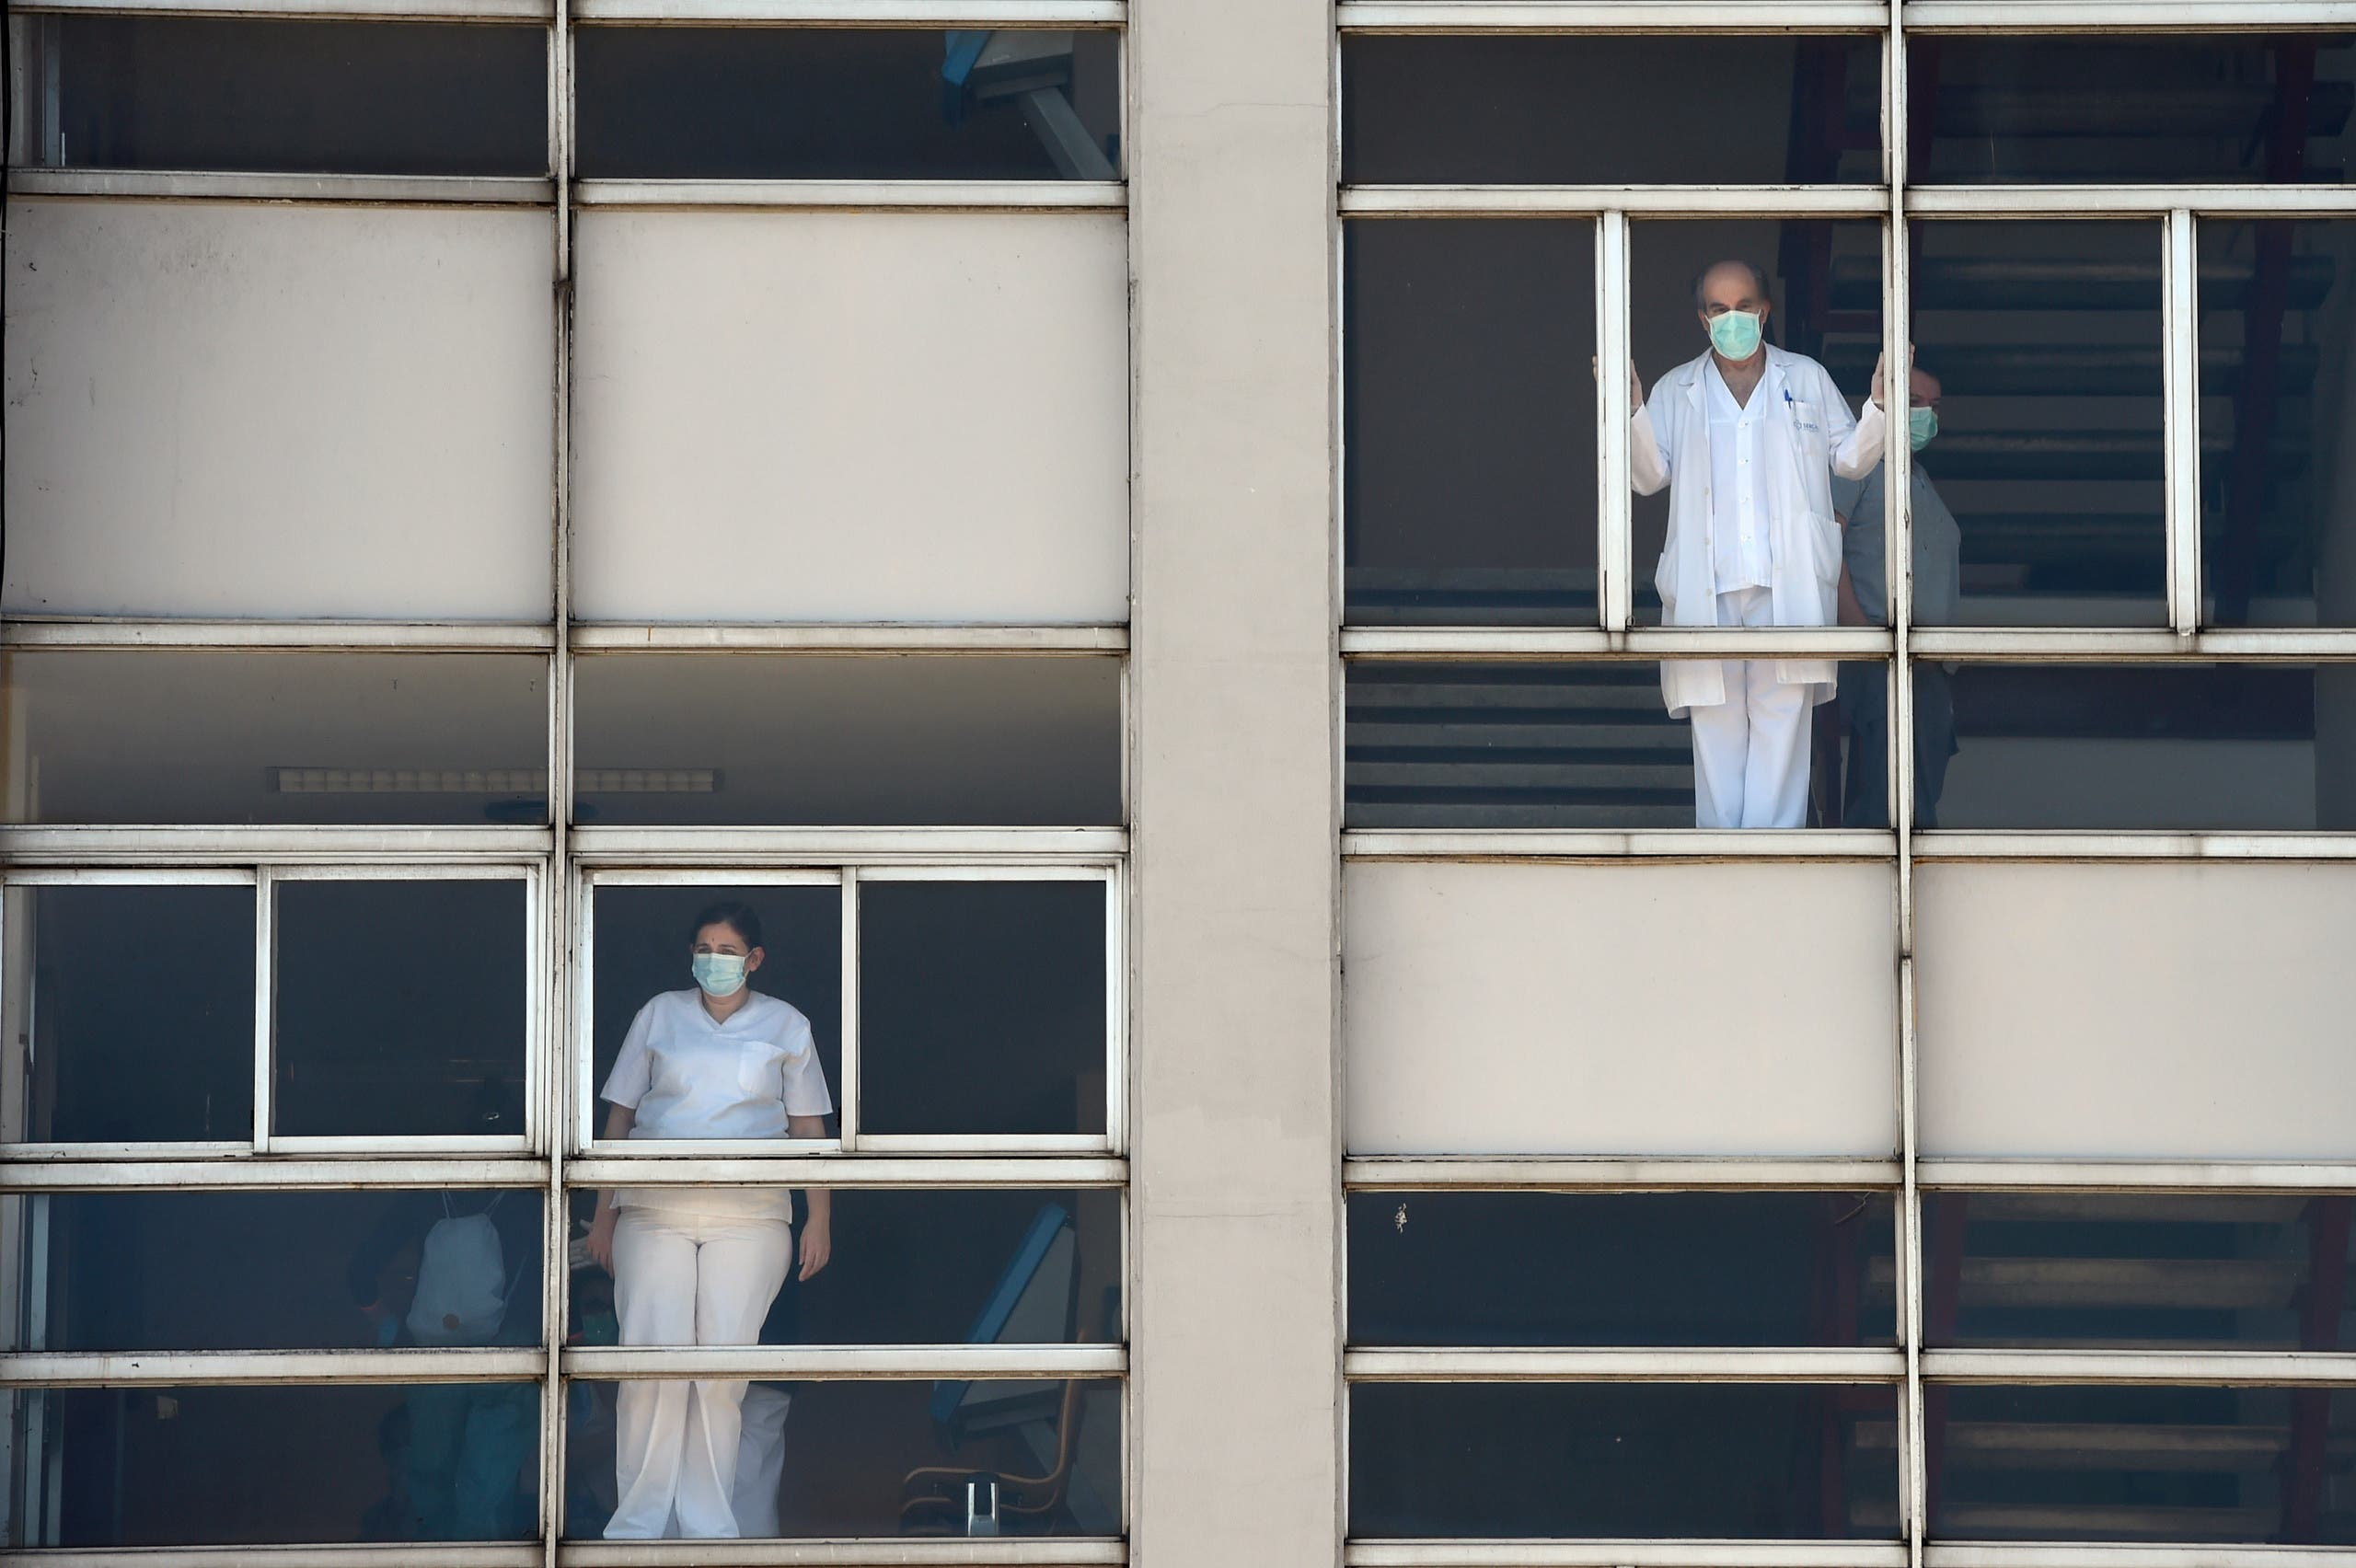 Healthcare workers dealing with the new coronavirus crisis look through the windows of the University Hospital in Coruna, northwestern Spain, on March 26, 2020. (AFP)